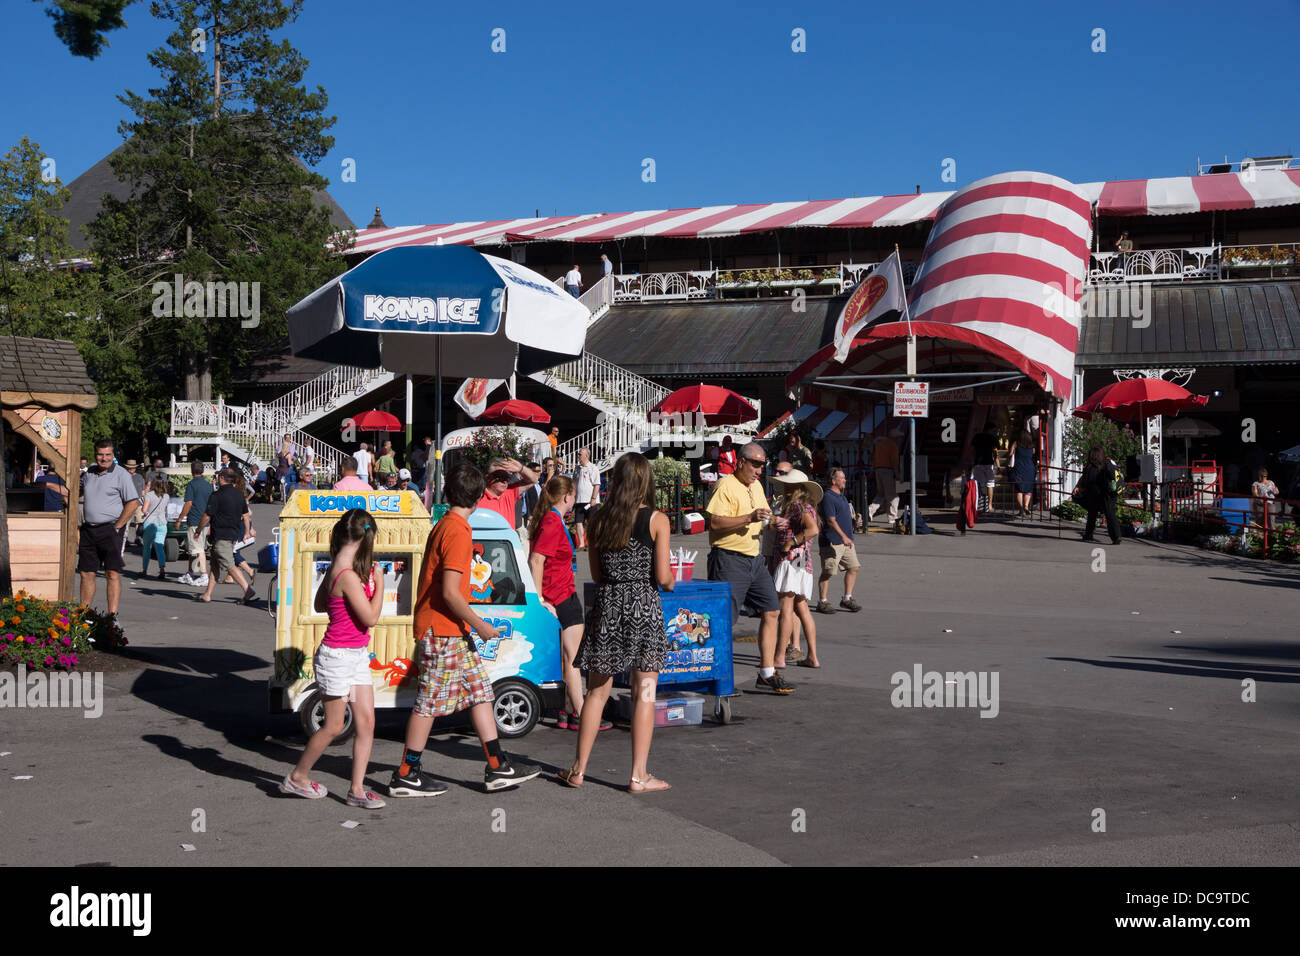 Saratoga Raceway is the oldest racetrack in the US, and celebrating 150 years of operation in 2013. - Stock Image